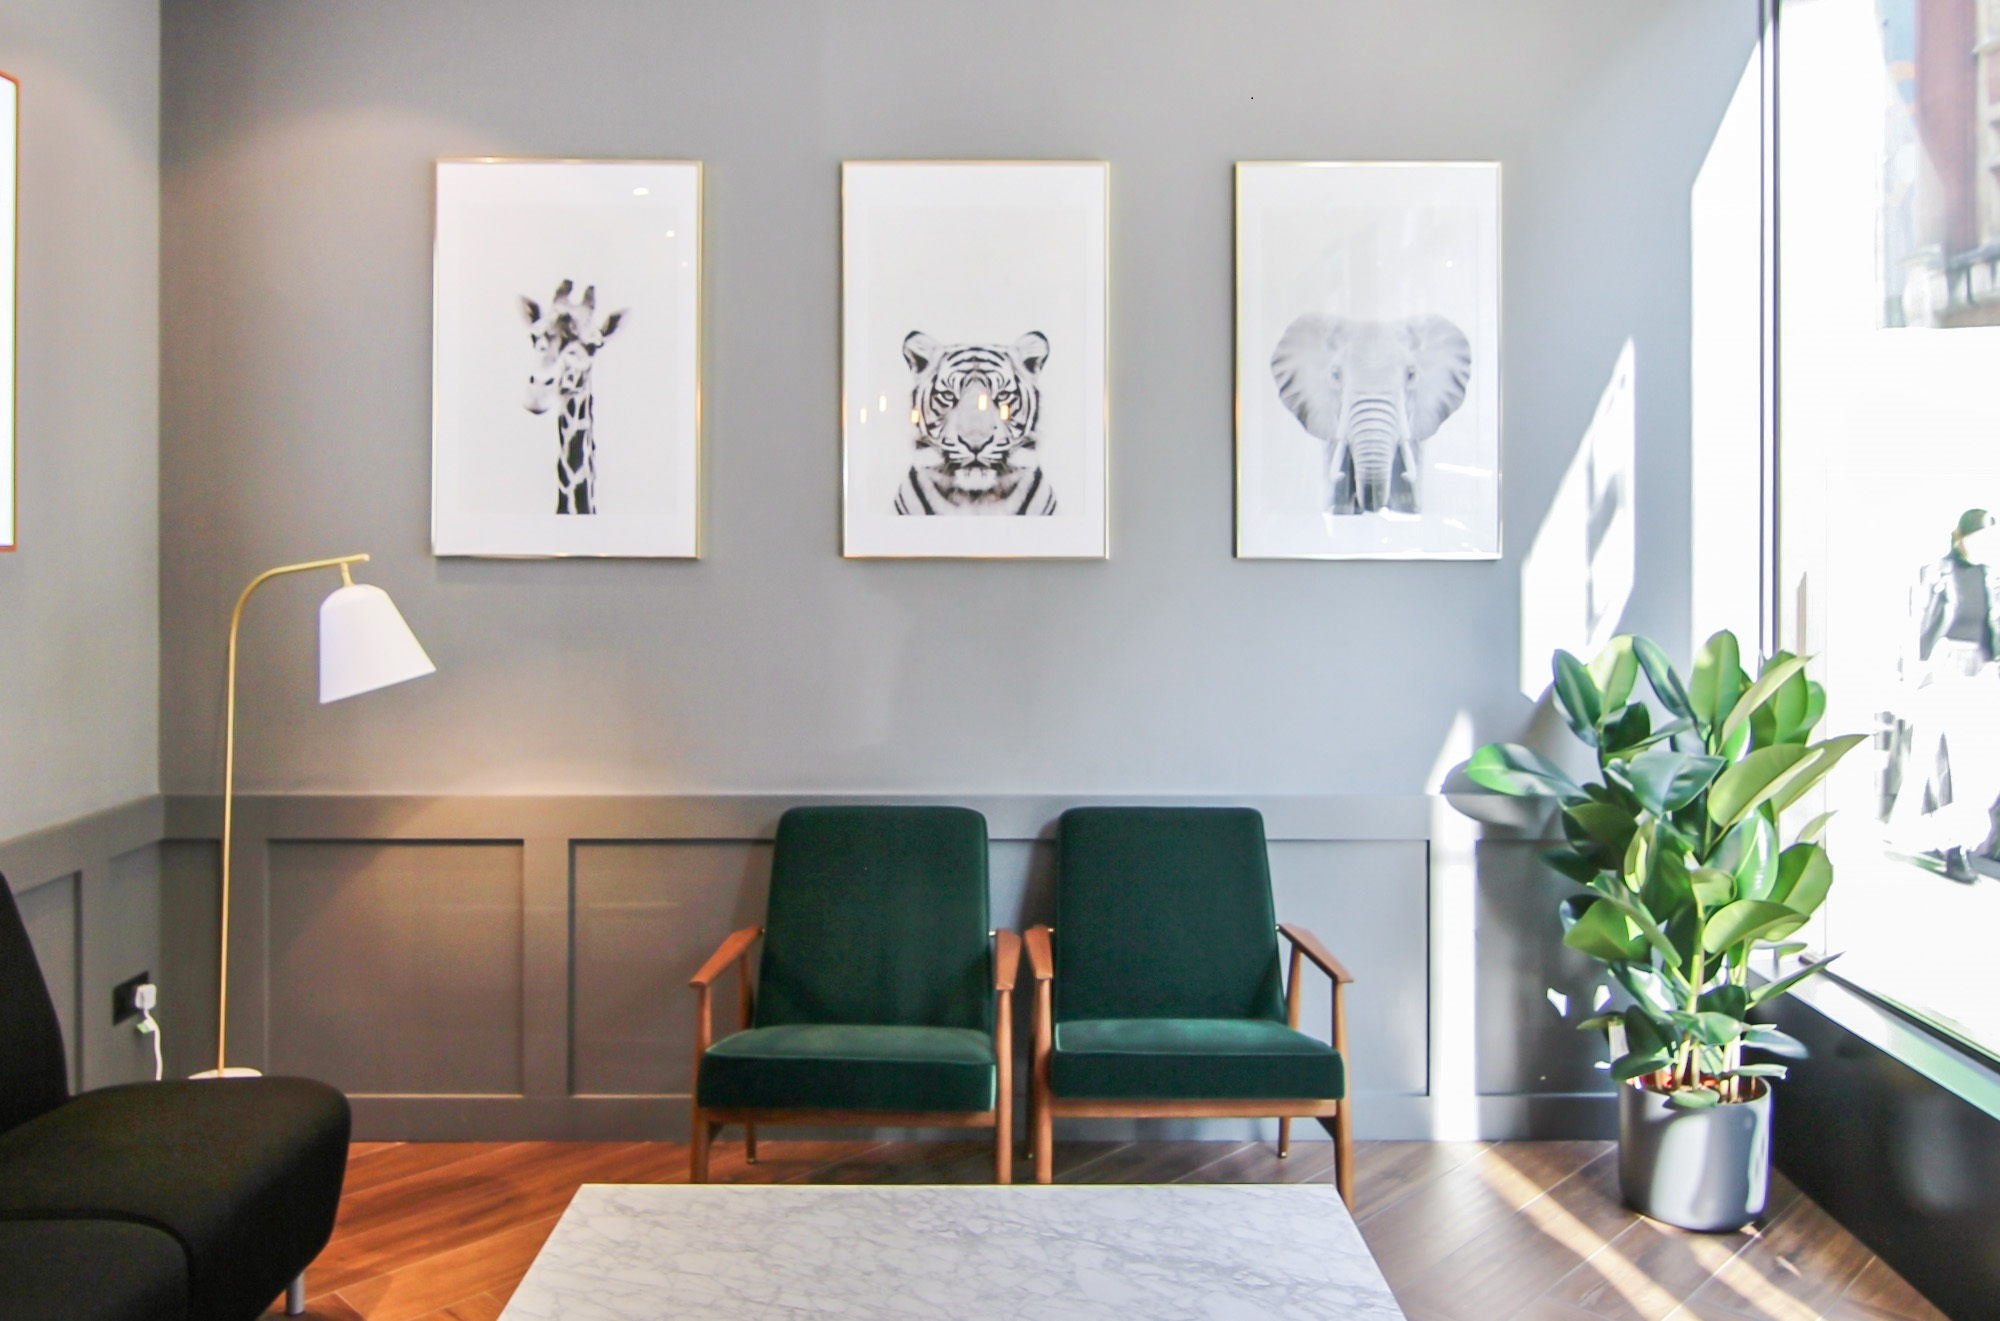 black and white animal images hanging on a wall